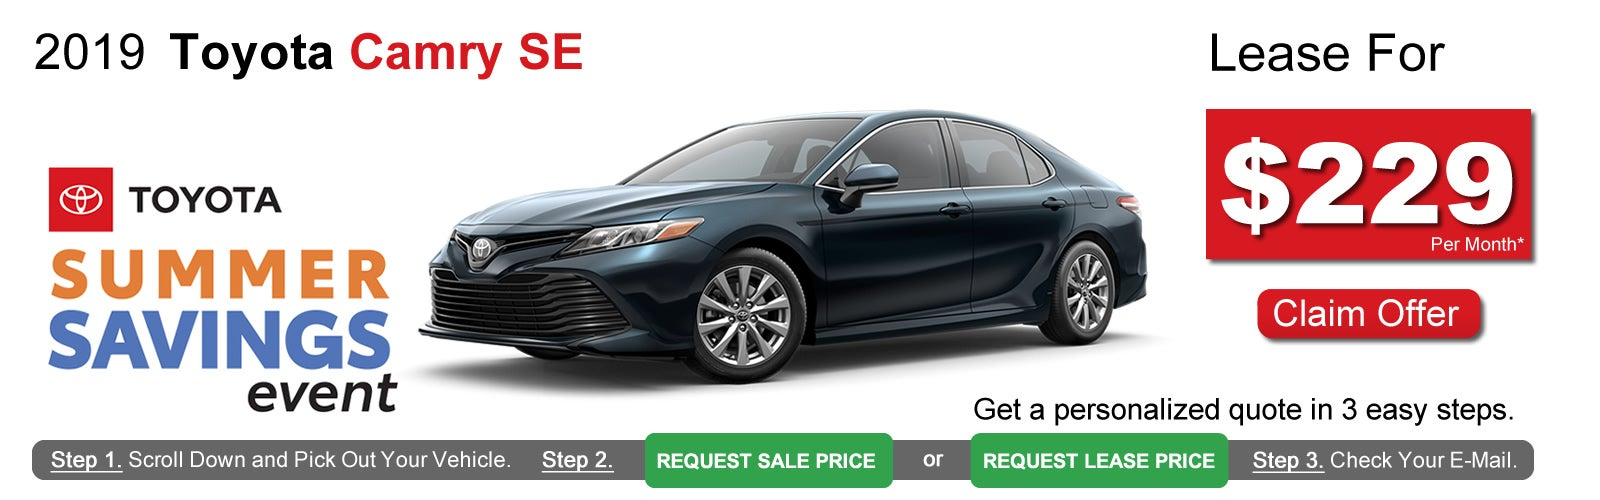 Toyota Lease Deals >> Toyota Camry Lease Deals Near Boston Ma Lease Offers